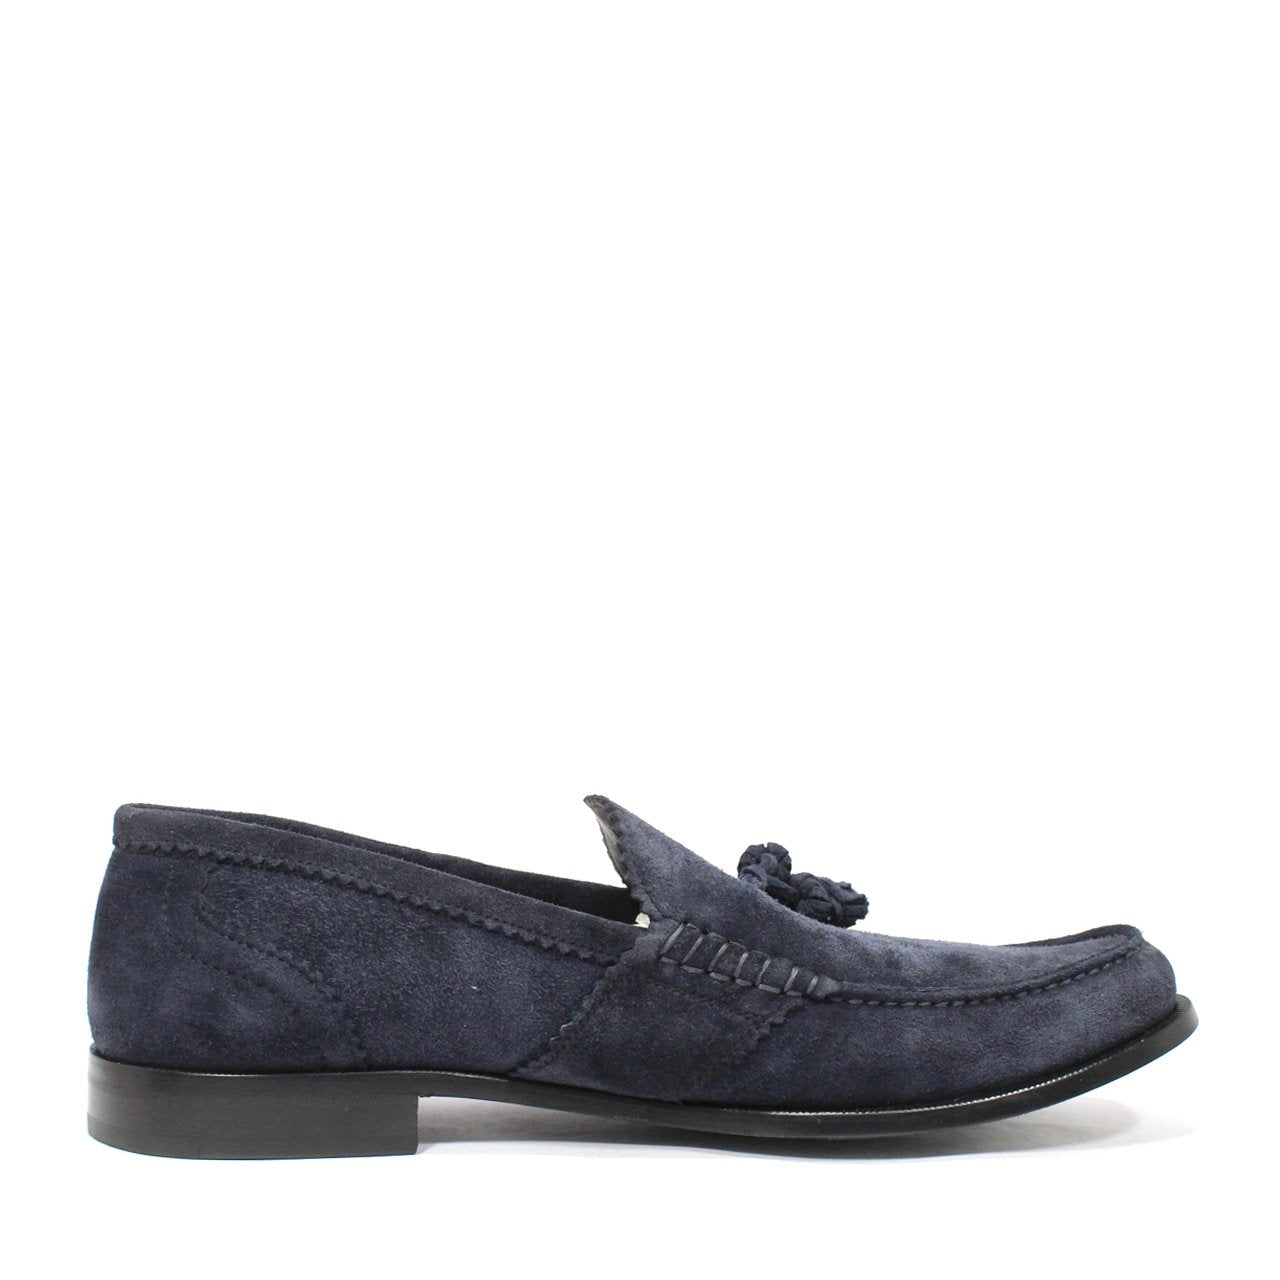 Bally Femanis Men's Espadrille Style Tassel Moccasins